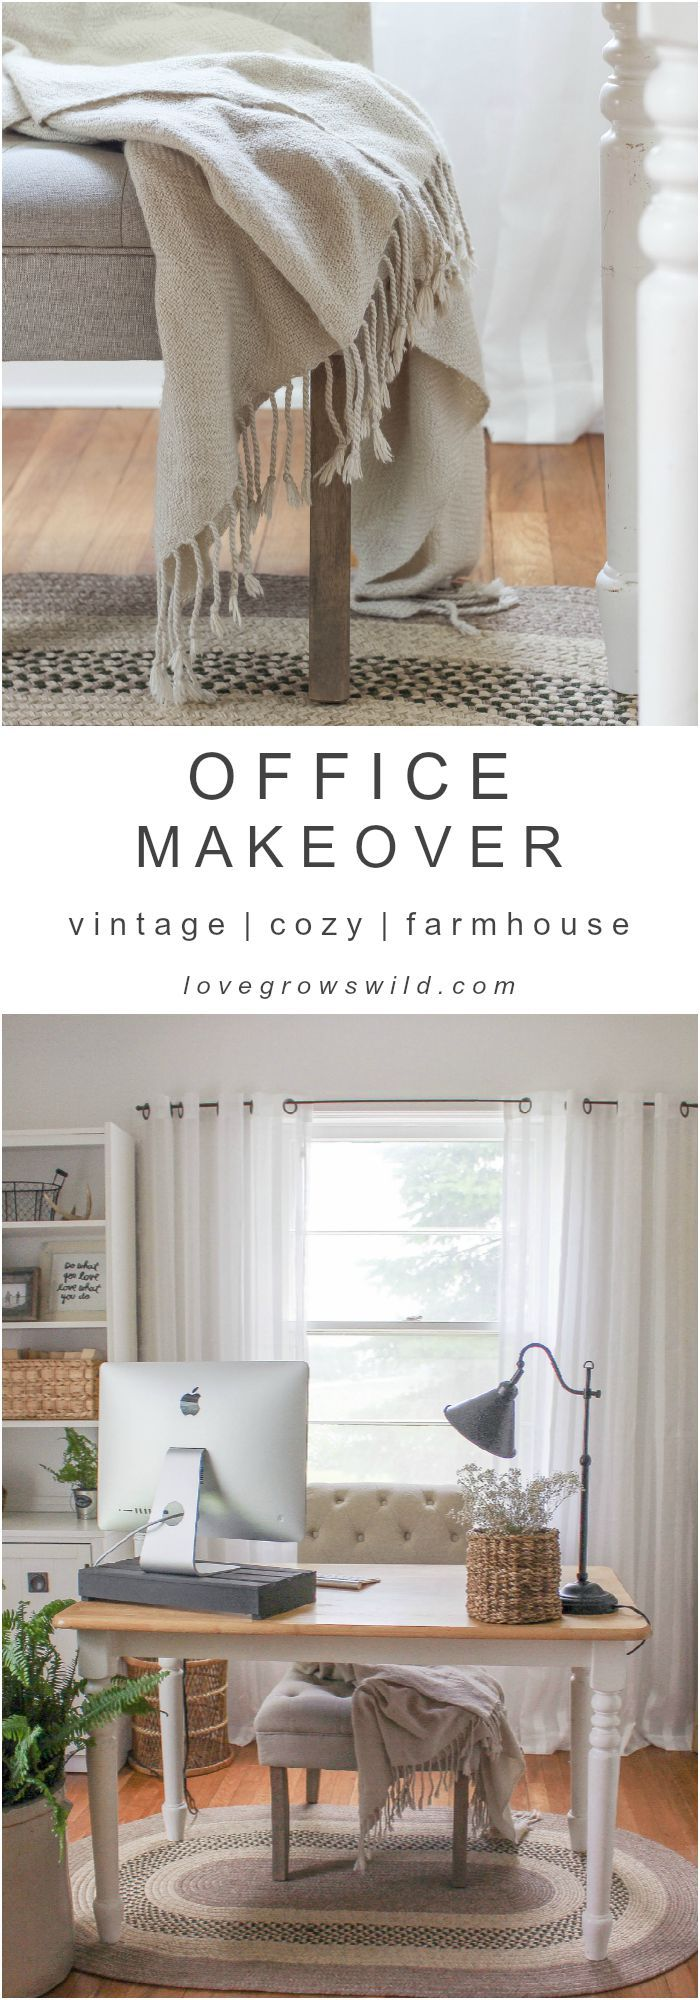 A must-see makeover! Check out the transformation of this gorgeous home office d...